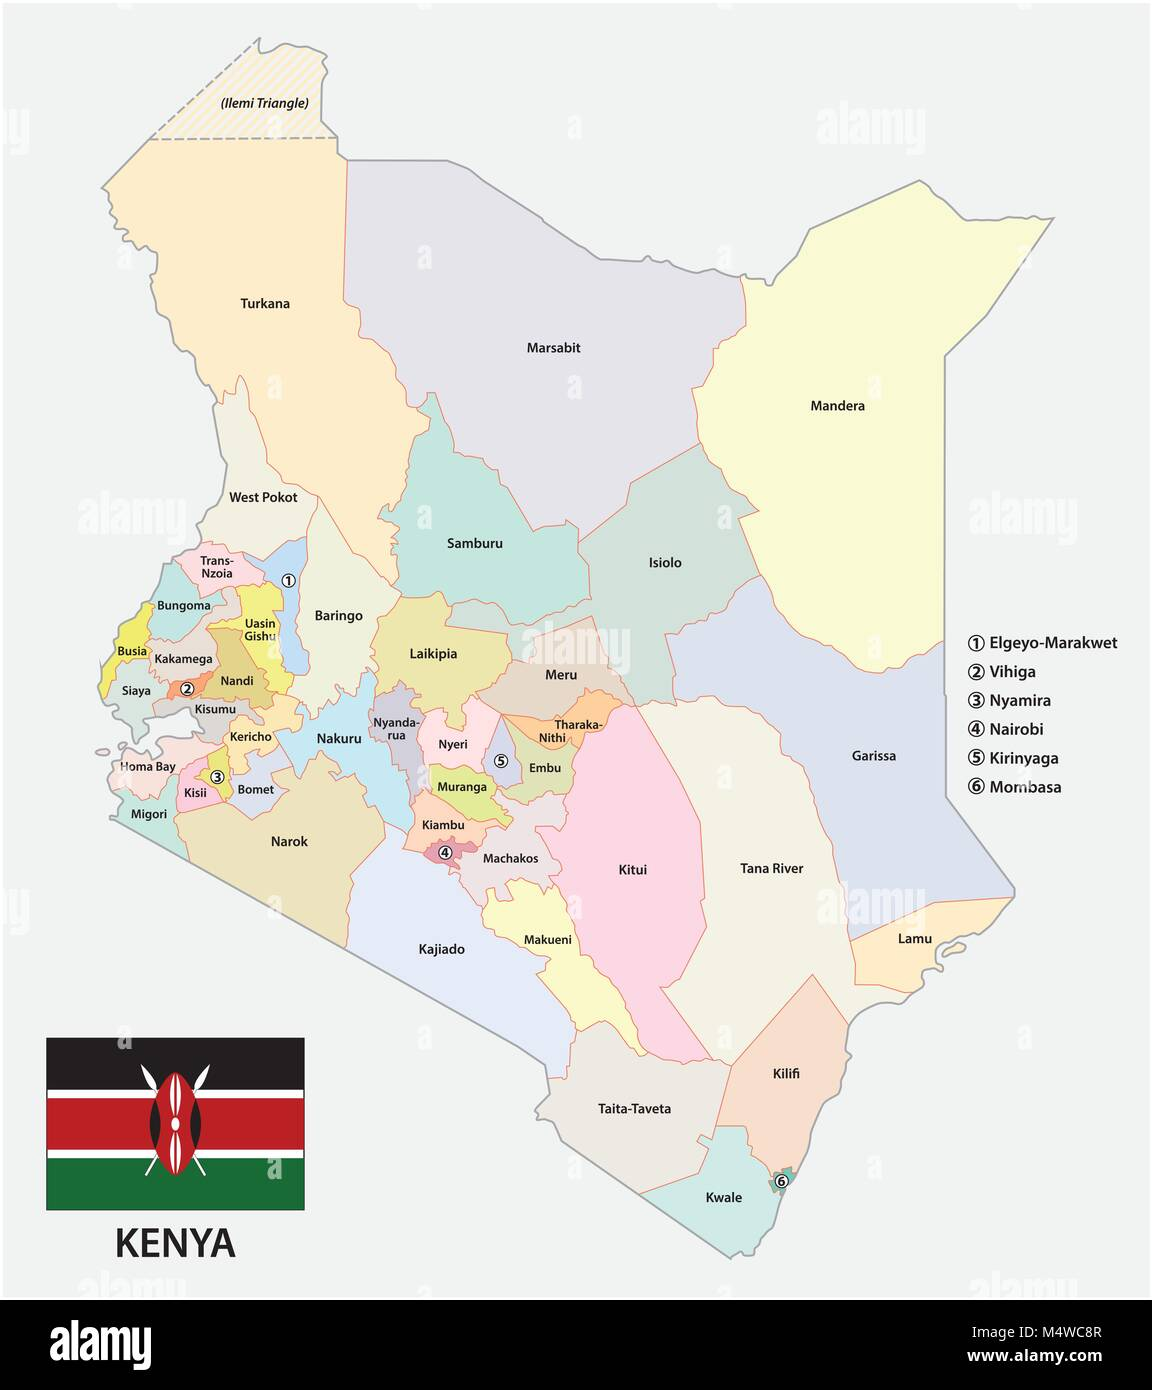 Administrative and political vector map of the Republic of Kenya with flag - Stock Image